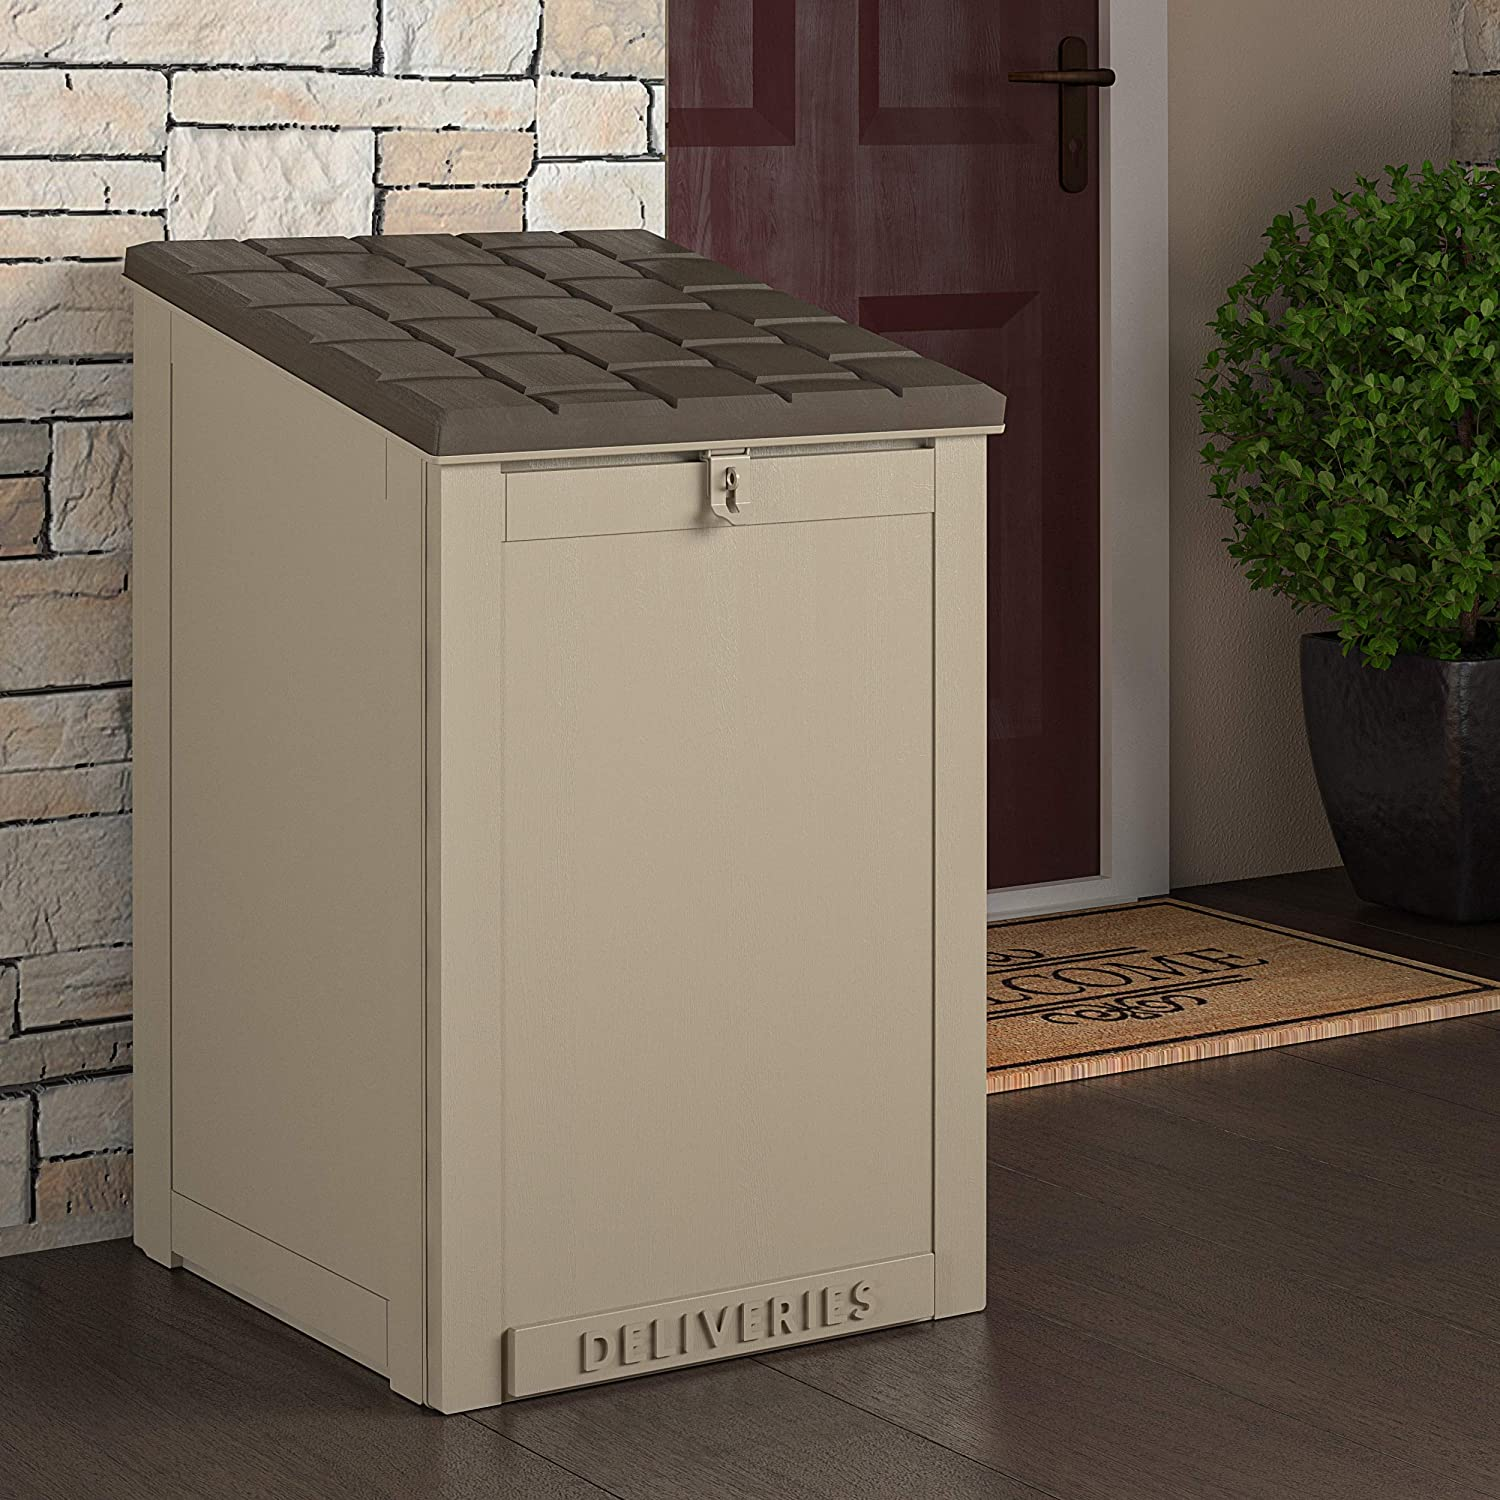 Cosco Outdoor Living 88333BTN1E, Large Lockable Package Delivery and Storage Box, 6.3 Cubic feet, Tan BoxGuard